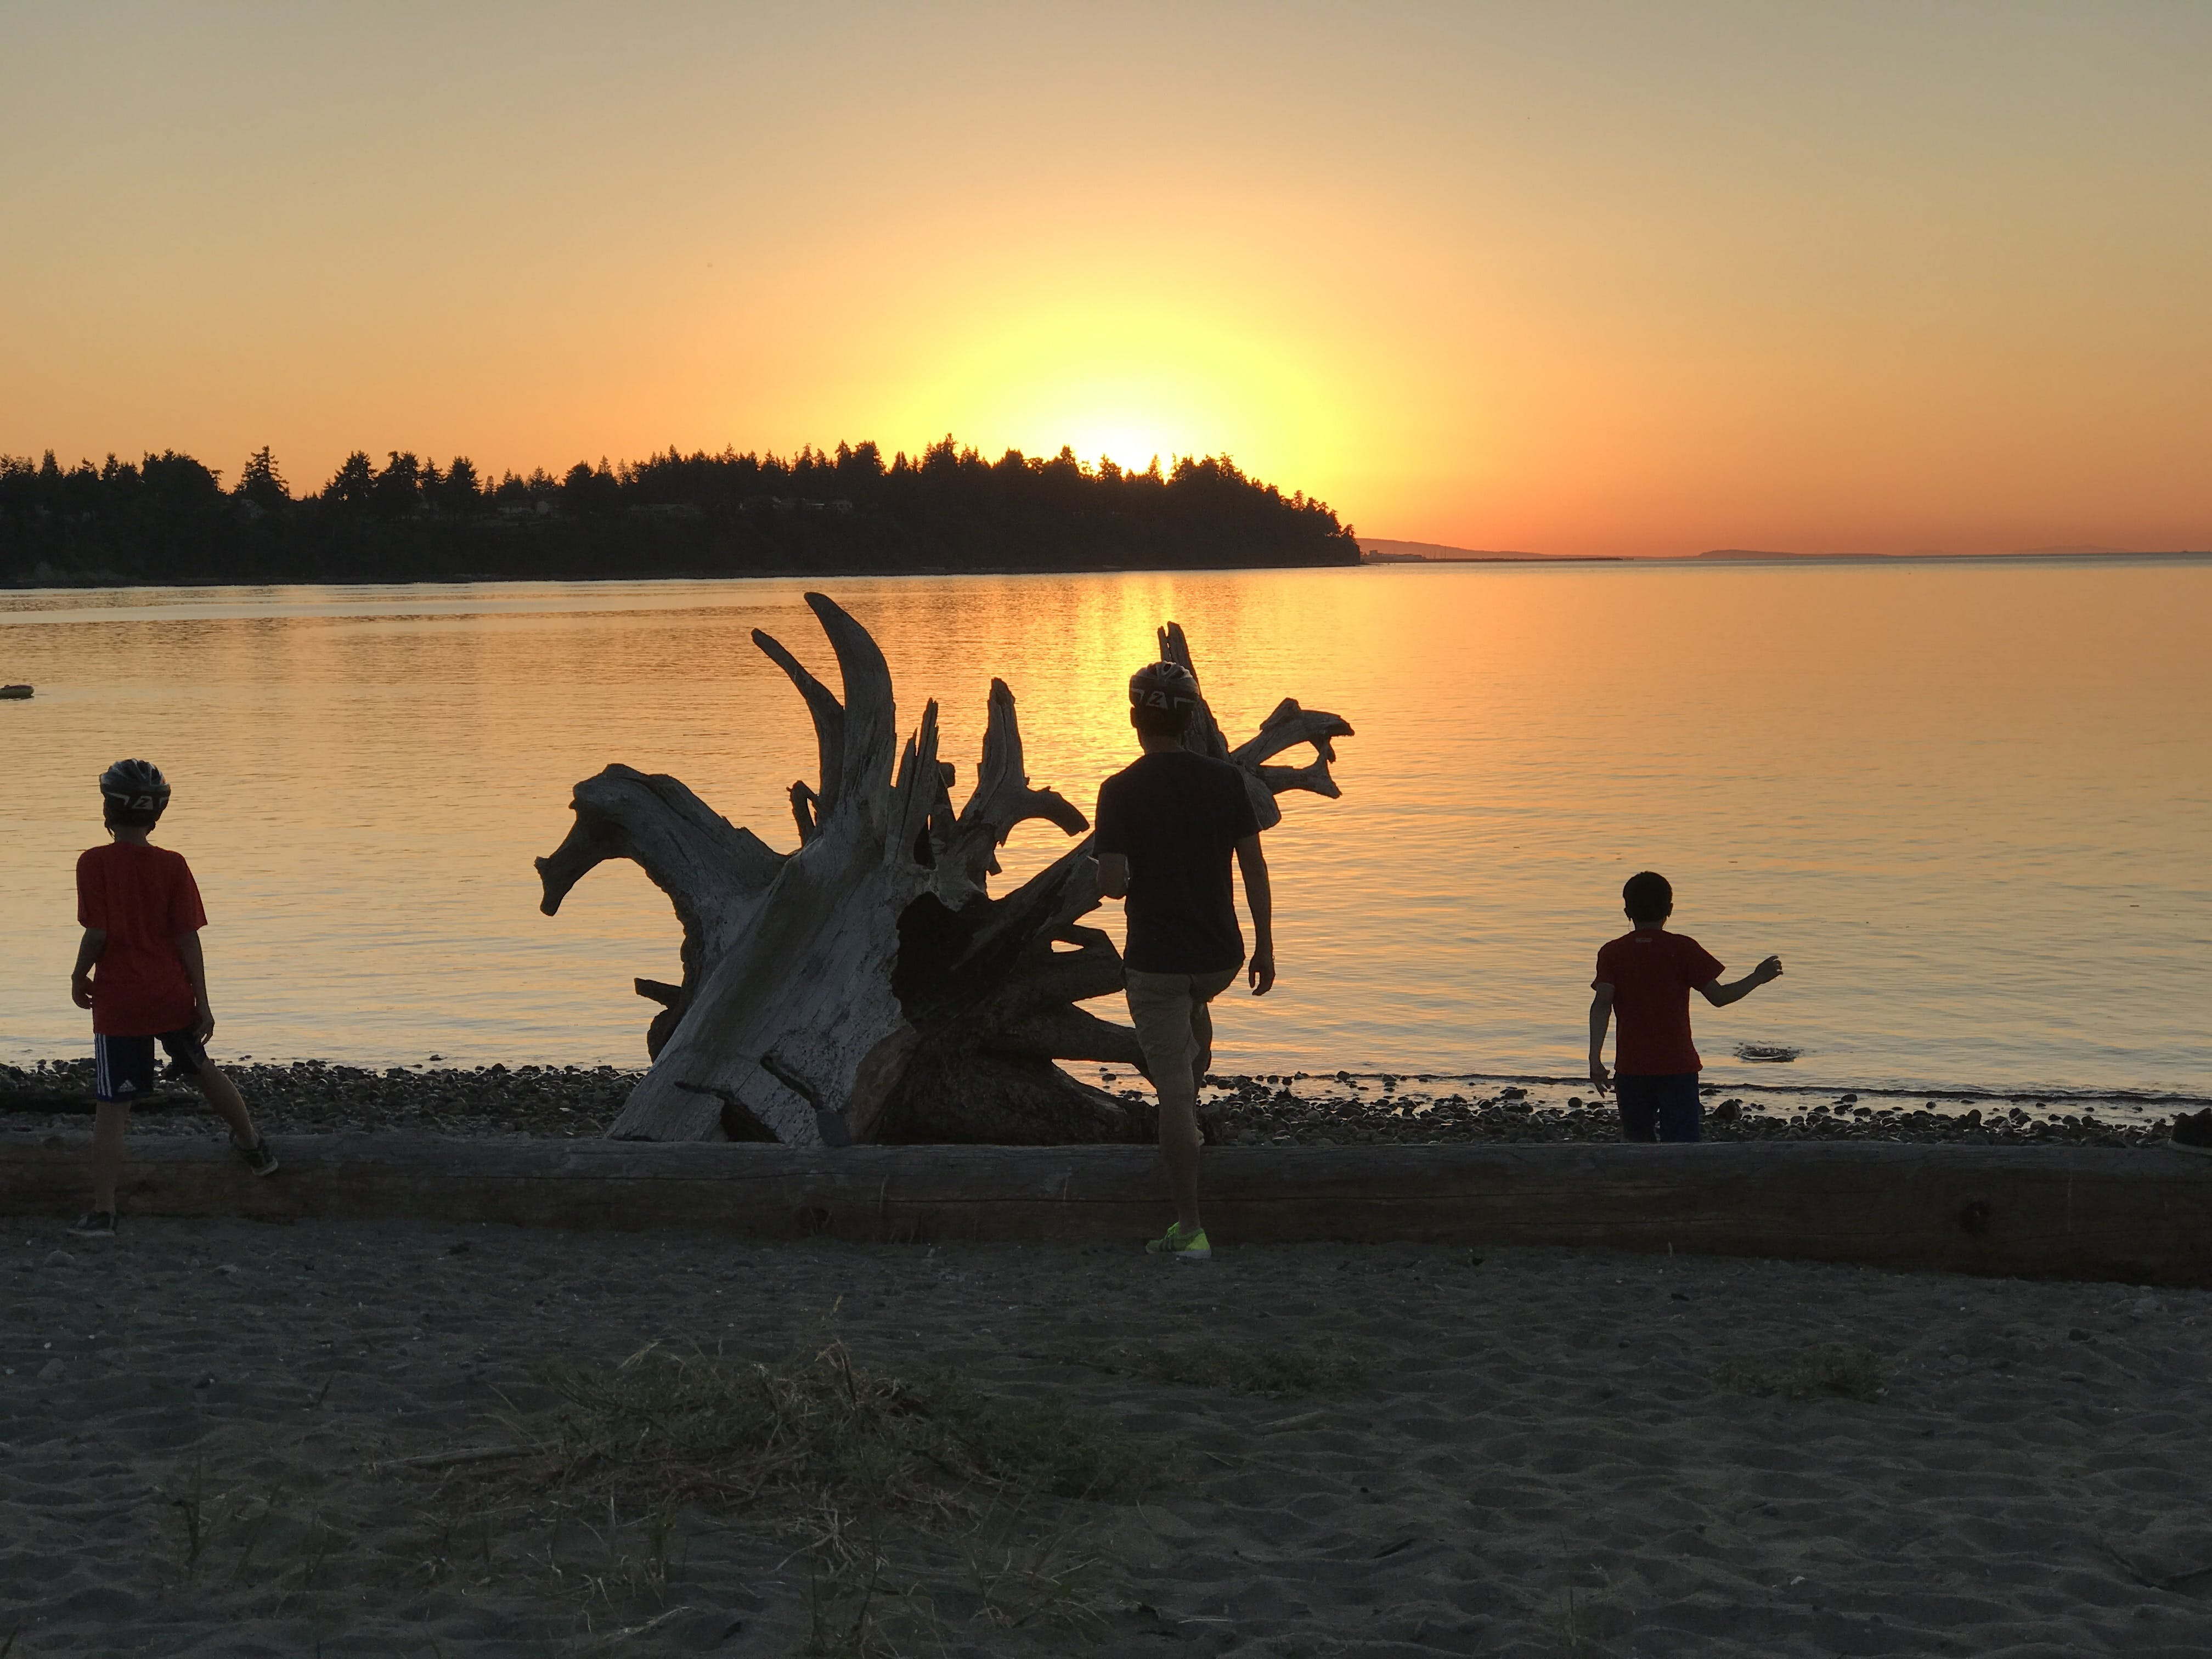 Parksville Bay at sunset